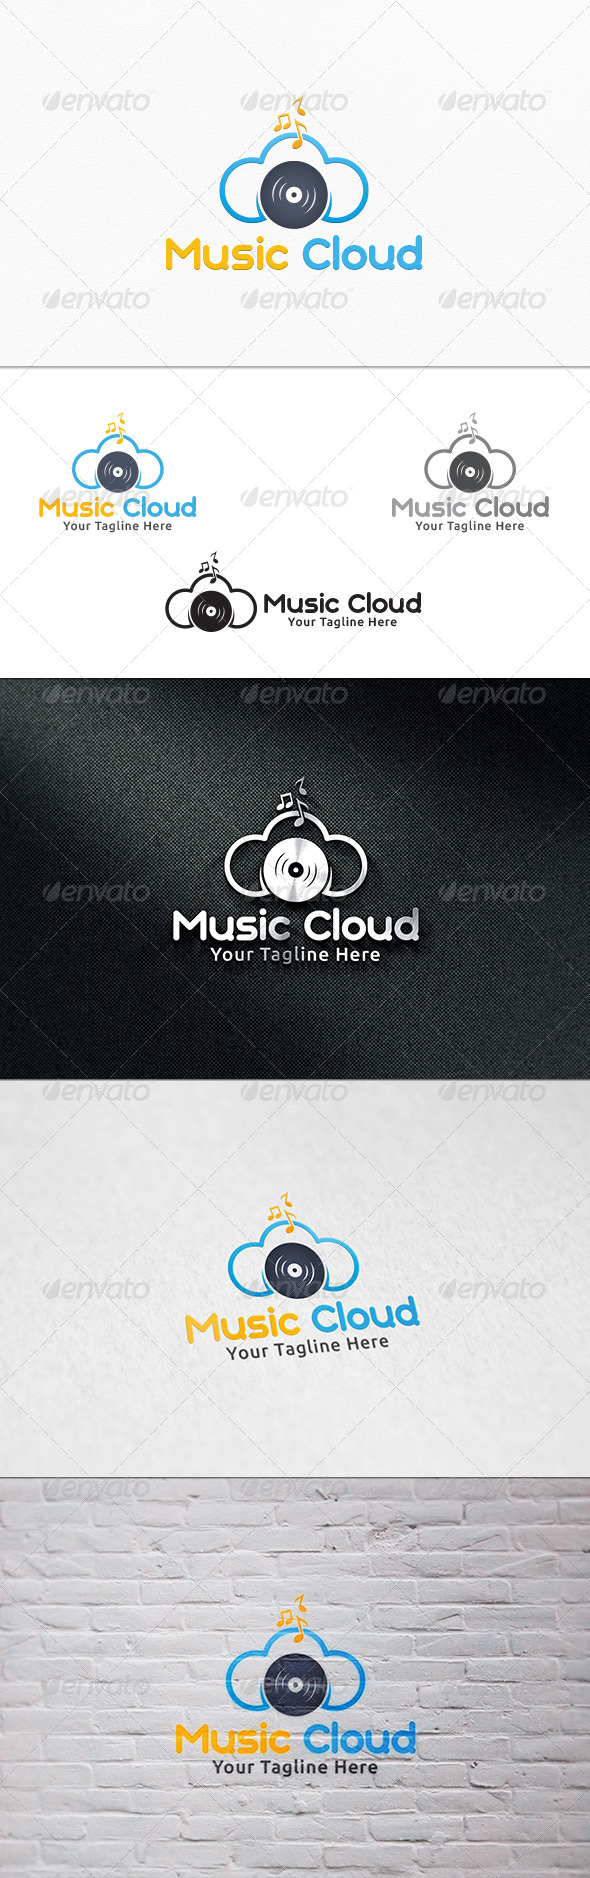 GraphicRiver Music Cloud Logo Template 7292700